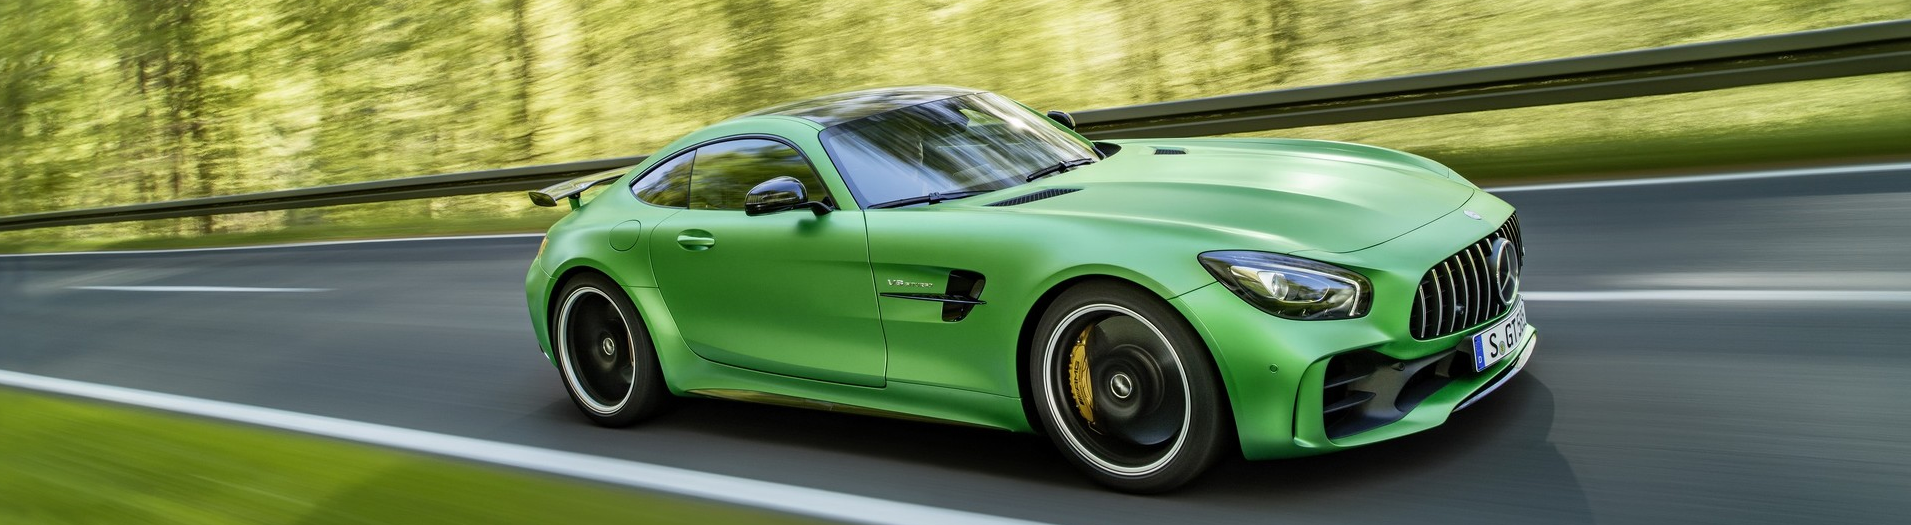 The 2017 Mercedes-AMG GT R increases efficiency with help from larger turbos that allow the 4.0L V8 engine to produce statistics that are comparable with the 2015 SLS AMG that is equipped with a much larger 6.2L V8. Extensive use of carbon fiber body panels to include the roof, rocker panels, and a full length belly pan help to reduce weight over the AMG GT S. The AMG GT R is also almost 2 inches wider allowing for a much more aggressive set of tires.